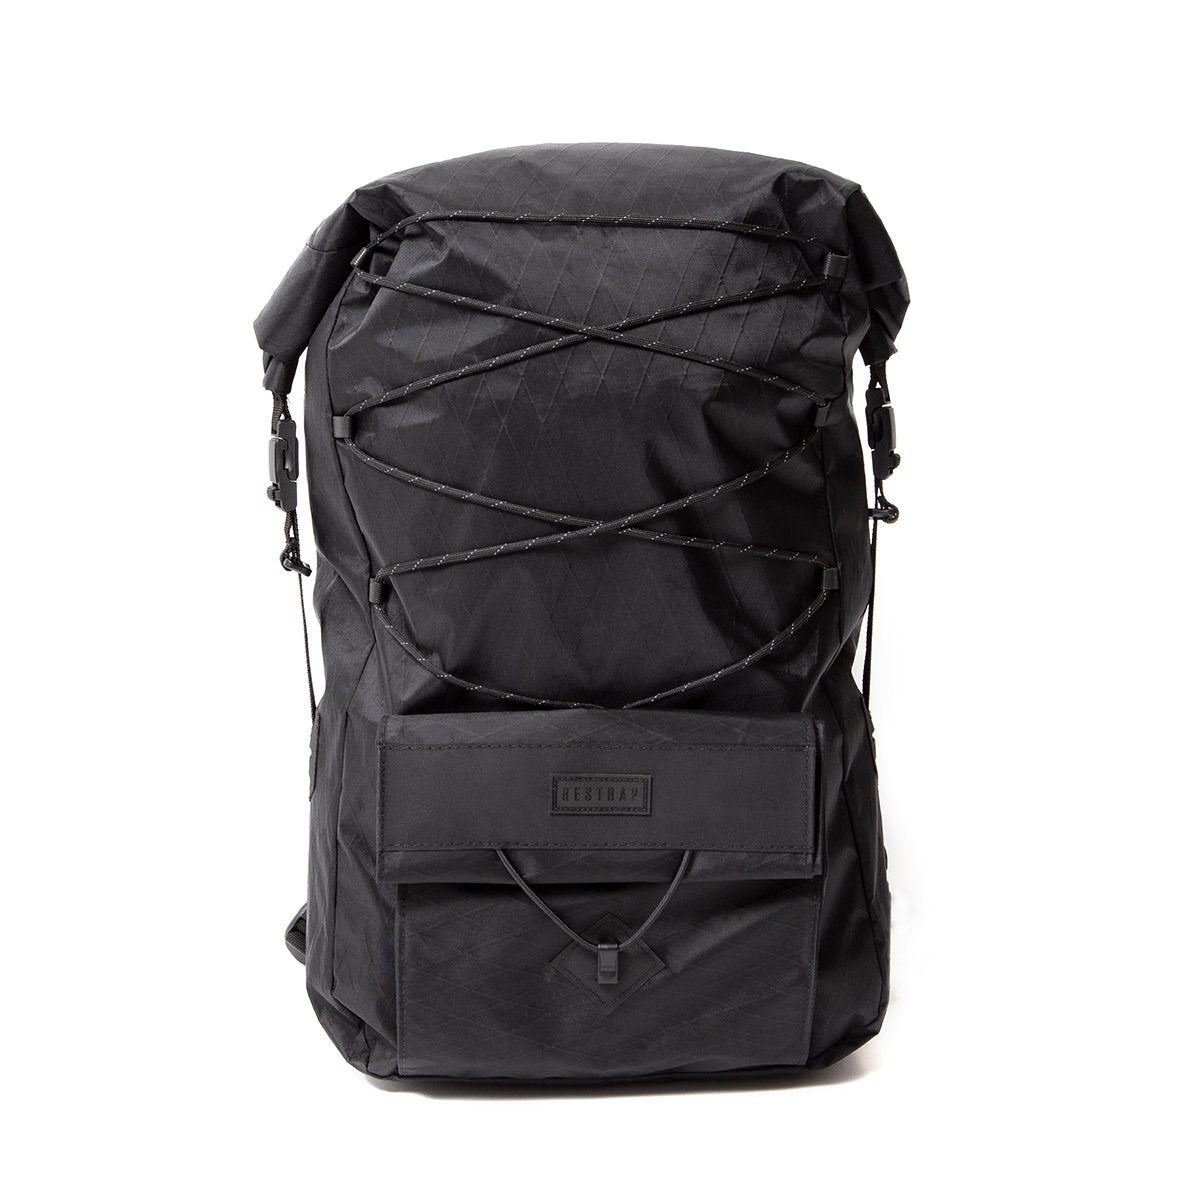 Restrap | Ascent Backpack | Roll Top Backpack | Waterproof Rucksack | Black